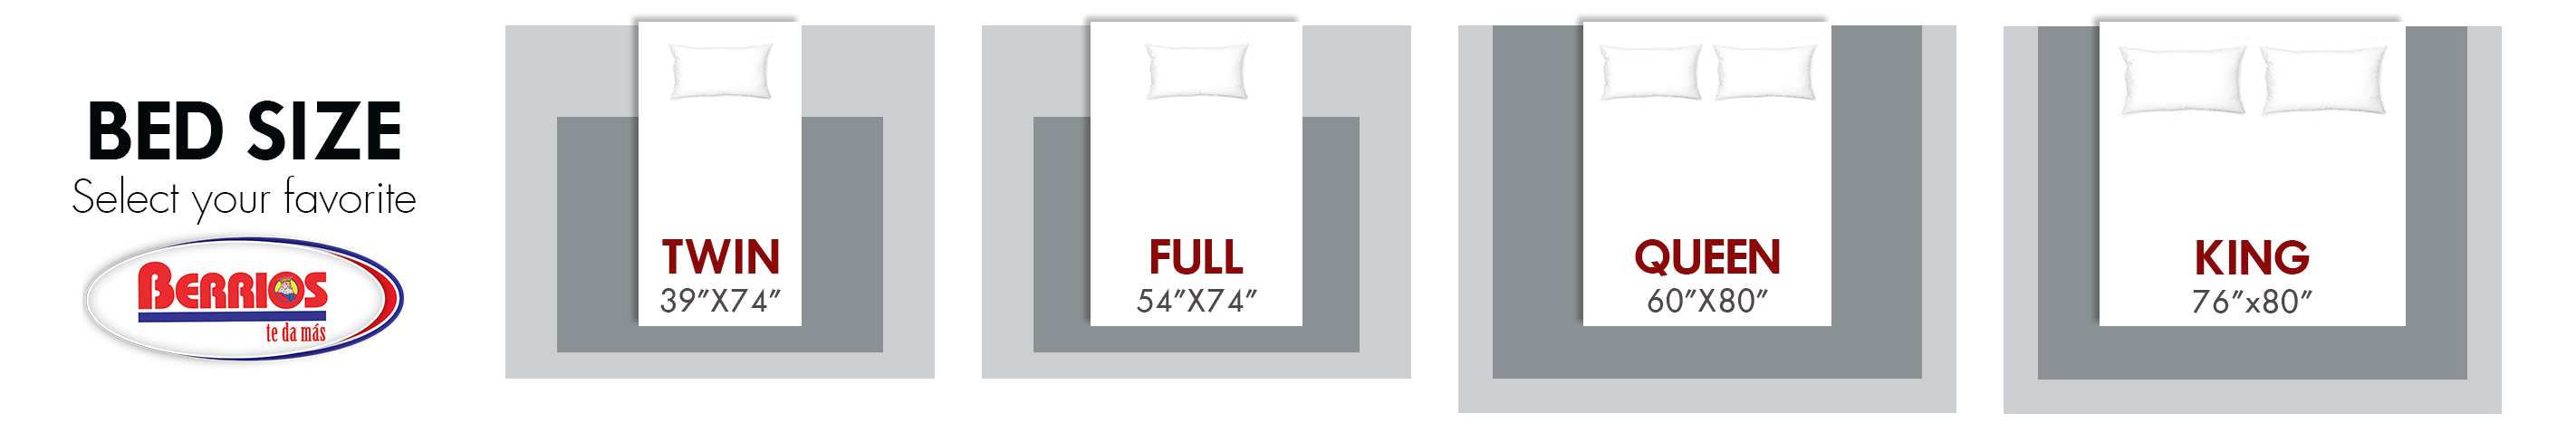 banner-bedroom-and-rugs-2.png